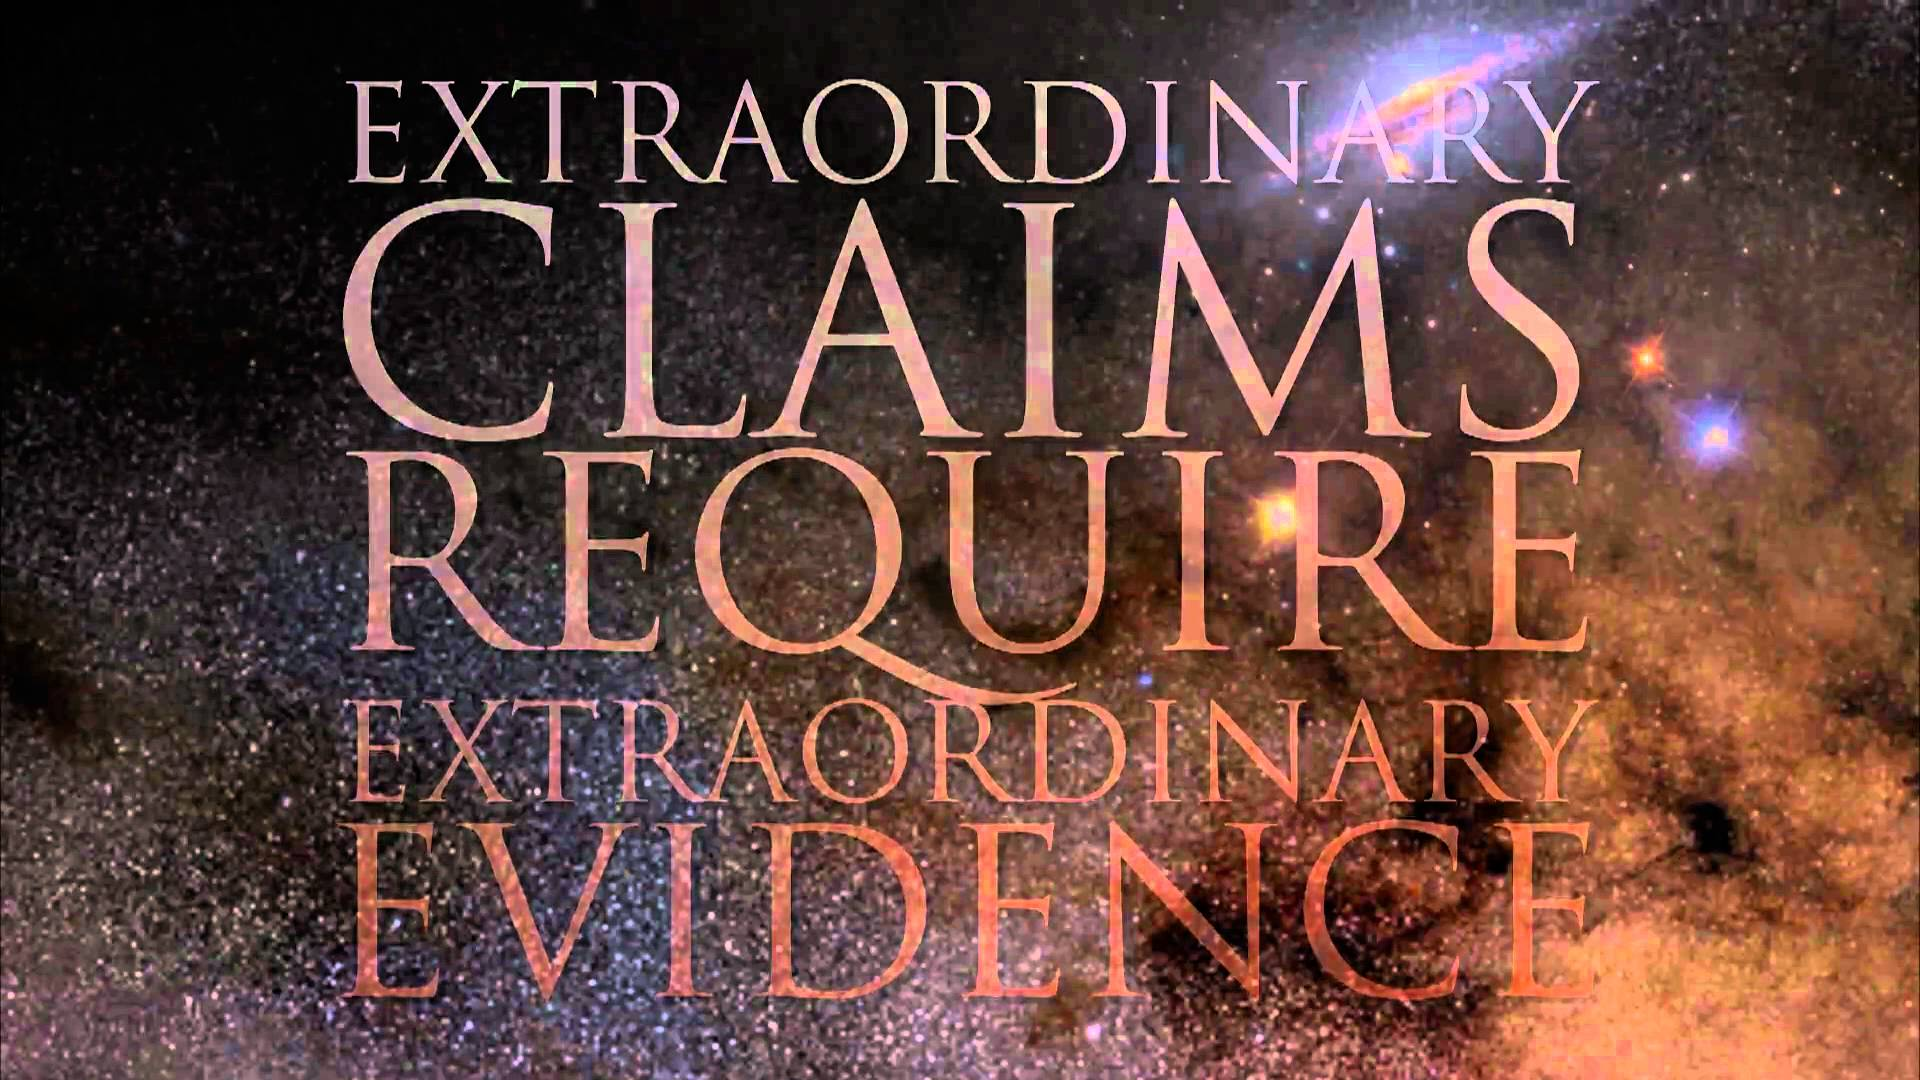 carl sagan - extraordinary claims require extraordinary evidence